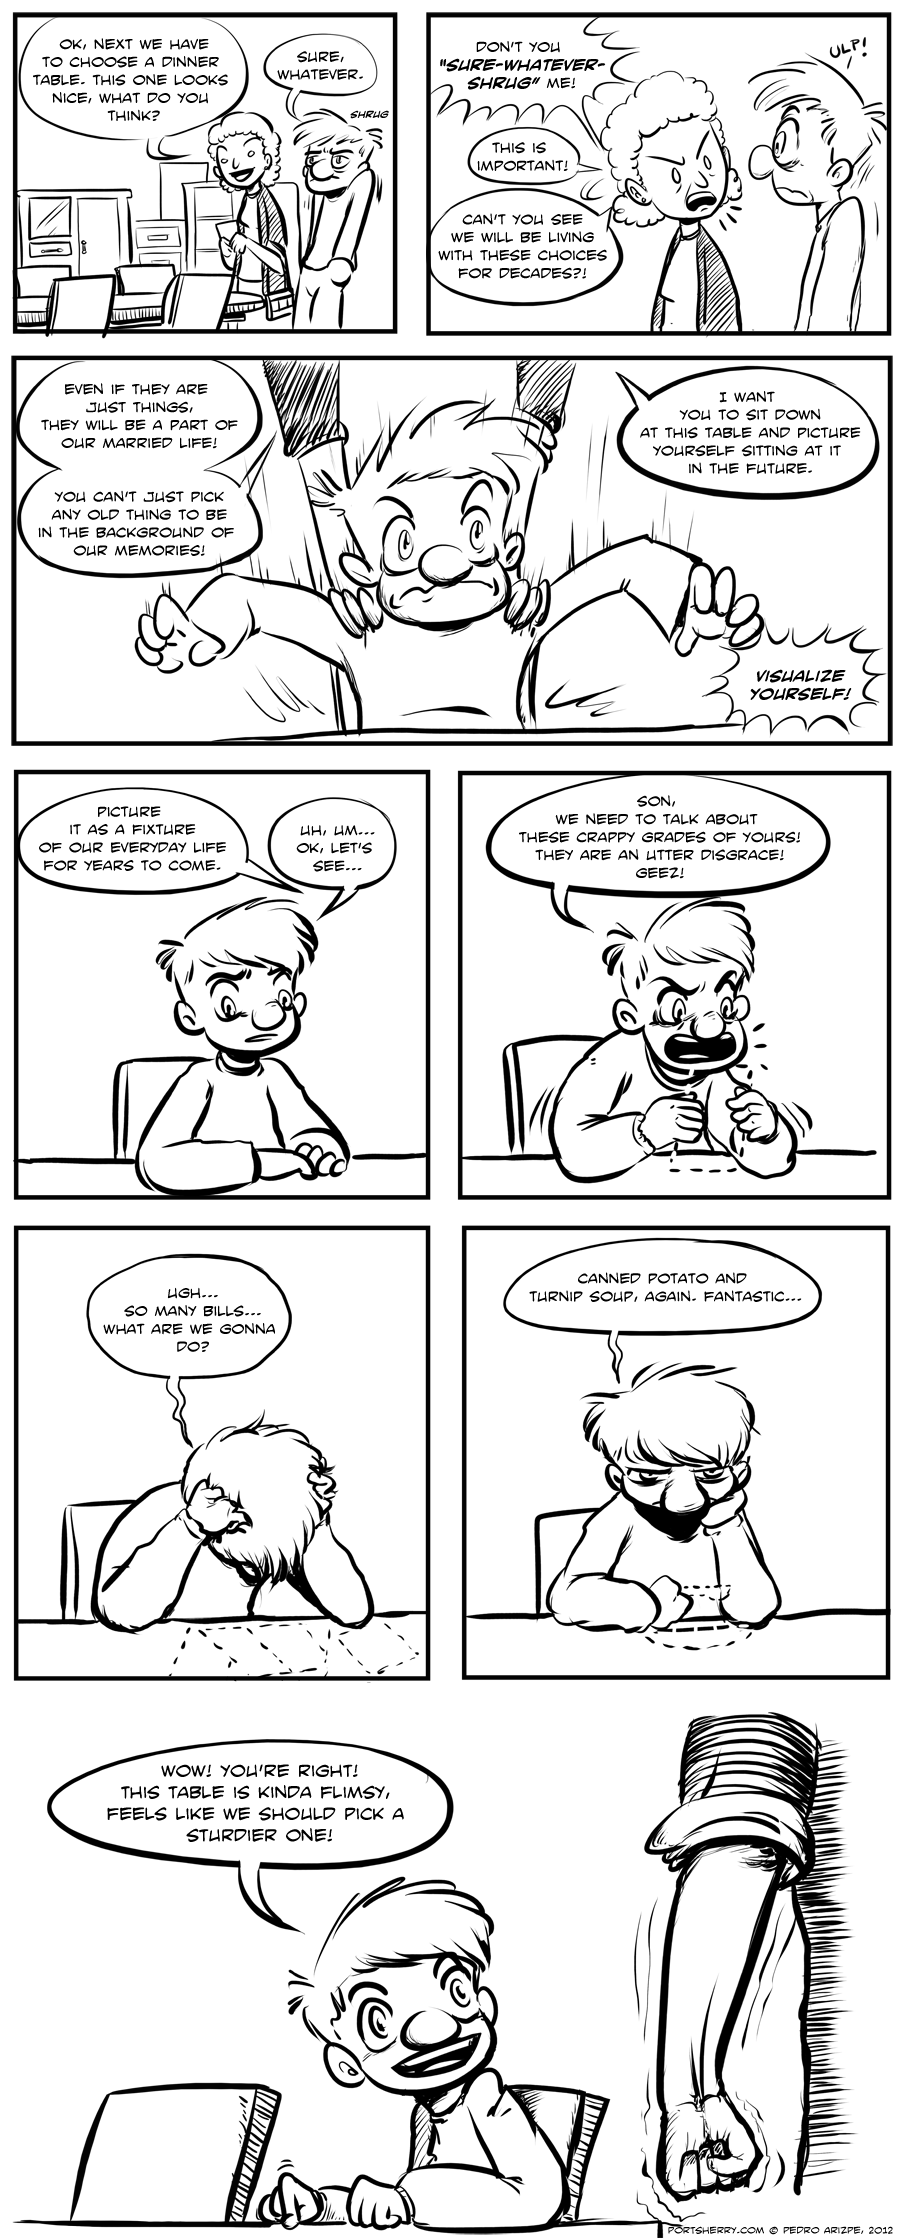 Picking a table